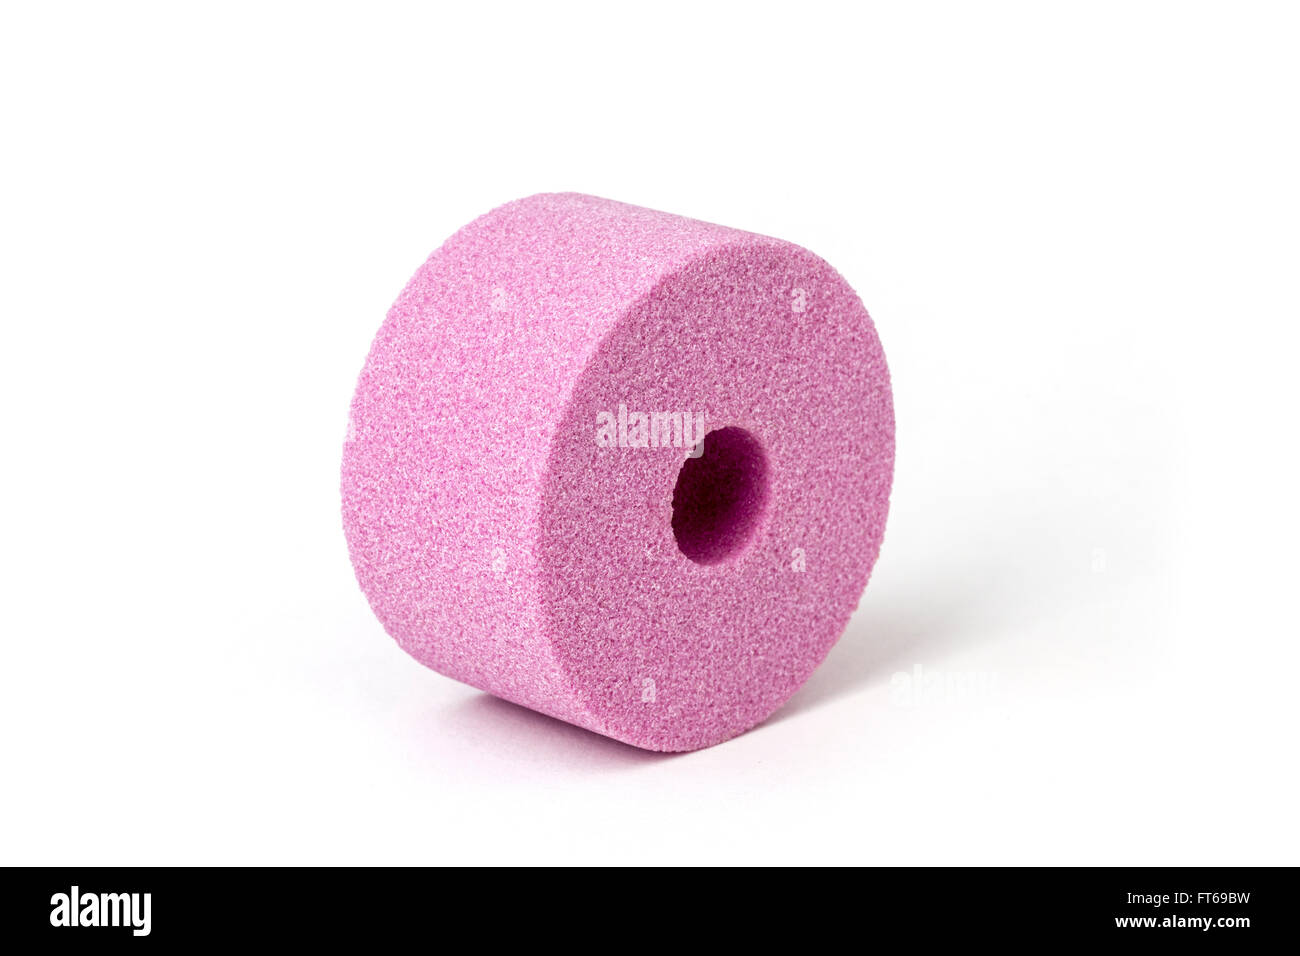 A pink abrasive wheel made out of corundum for grinding machine, photographed in the studio on a white background. - Stock Image